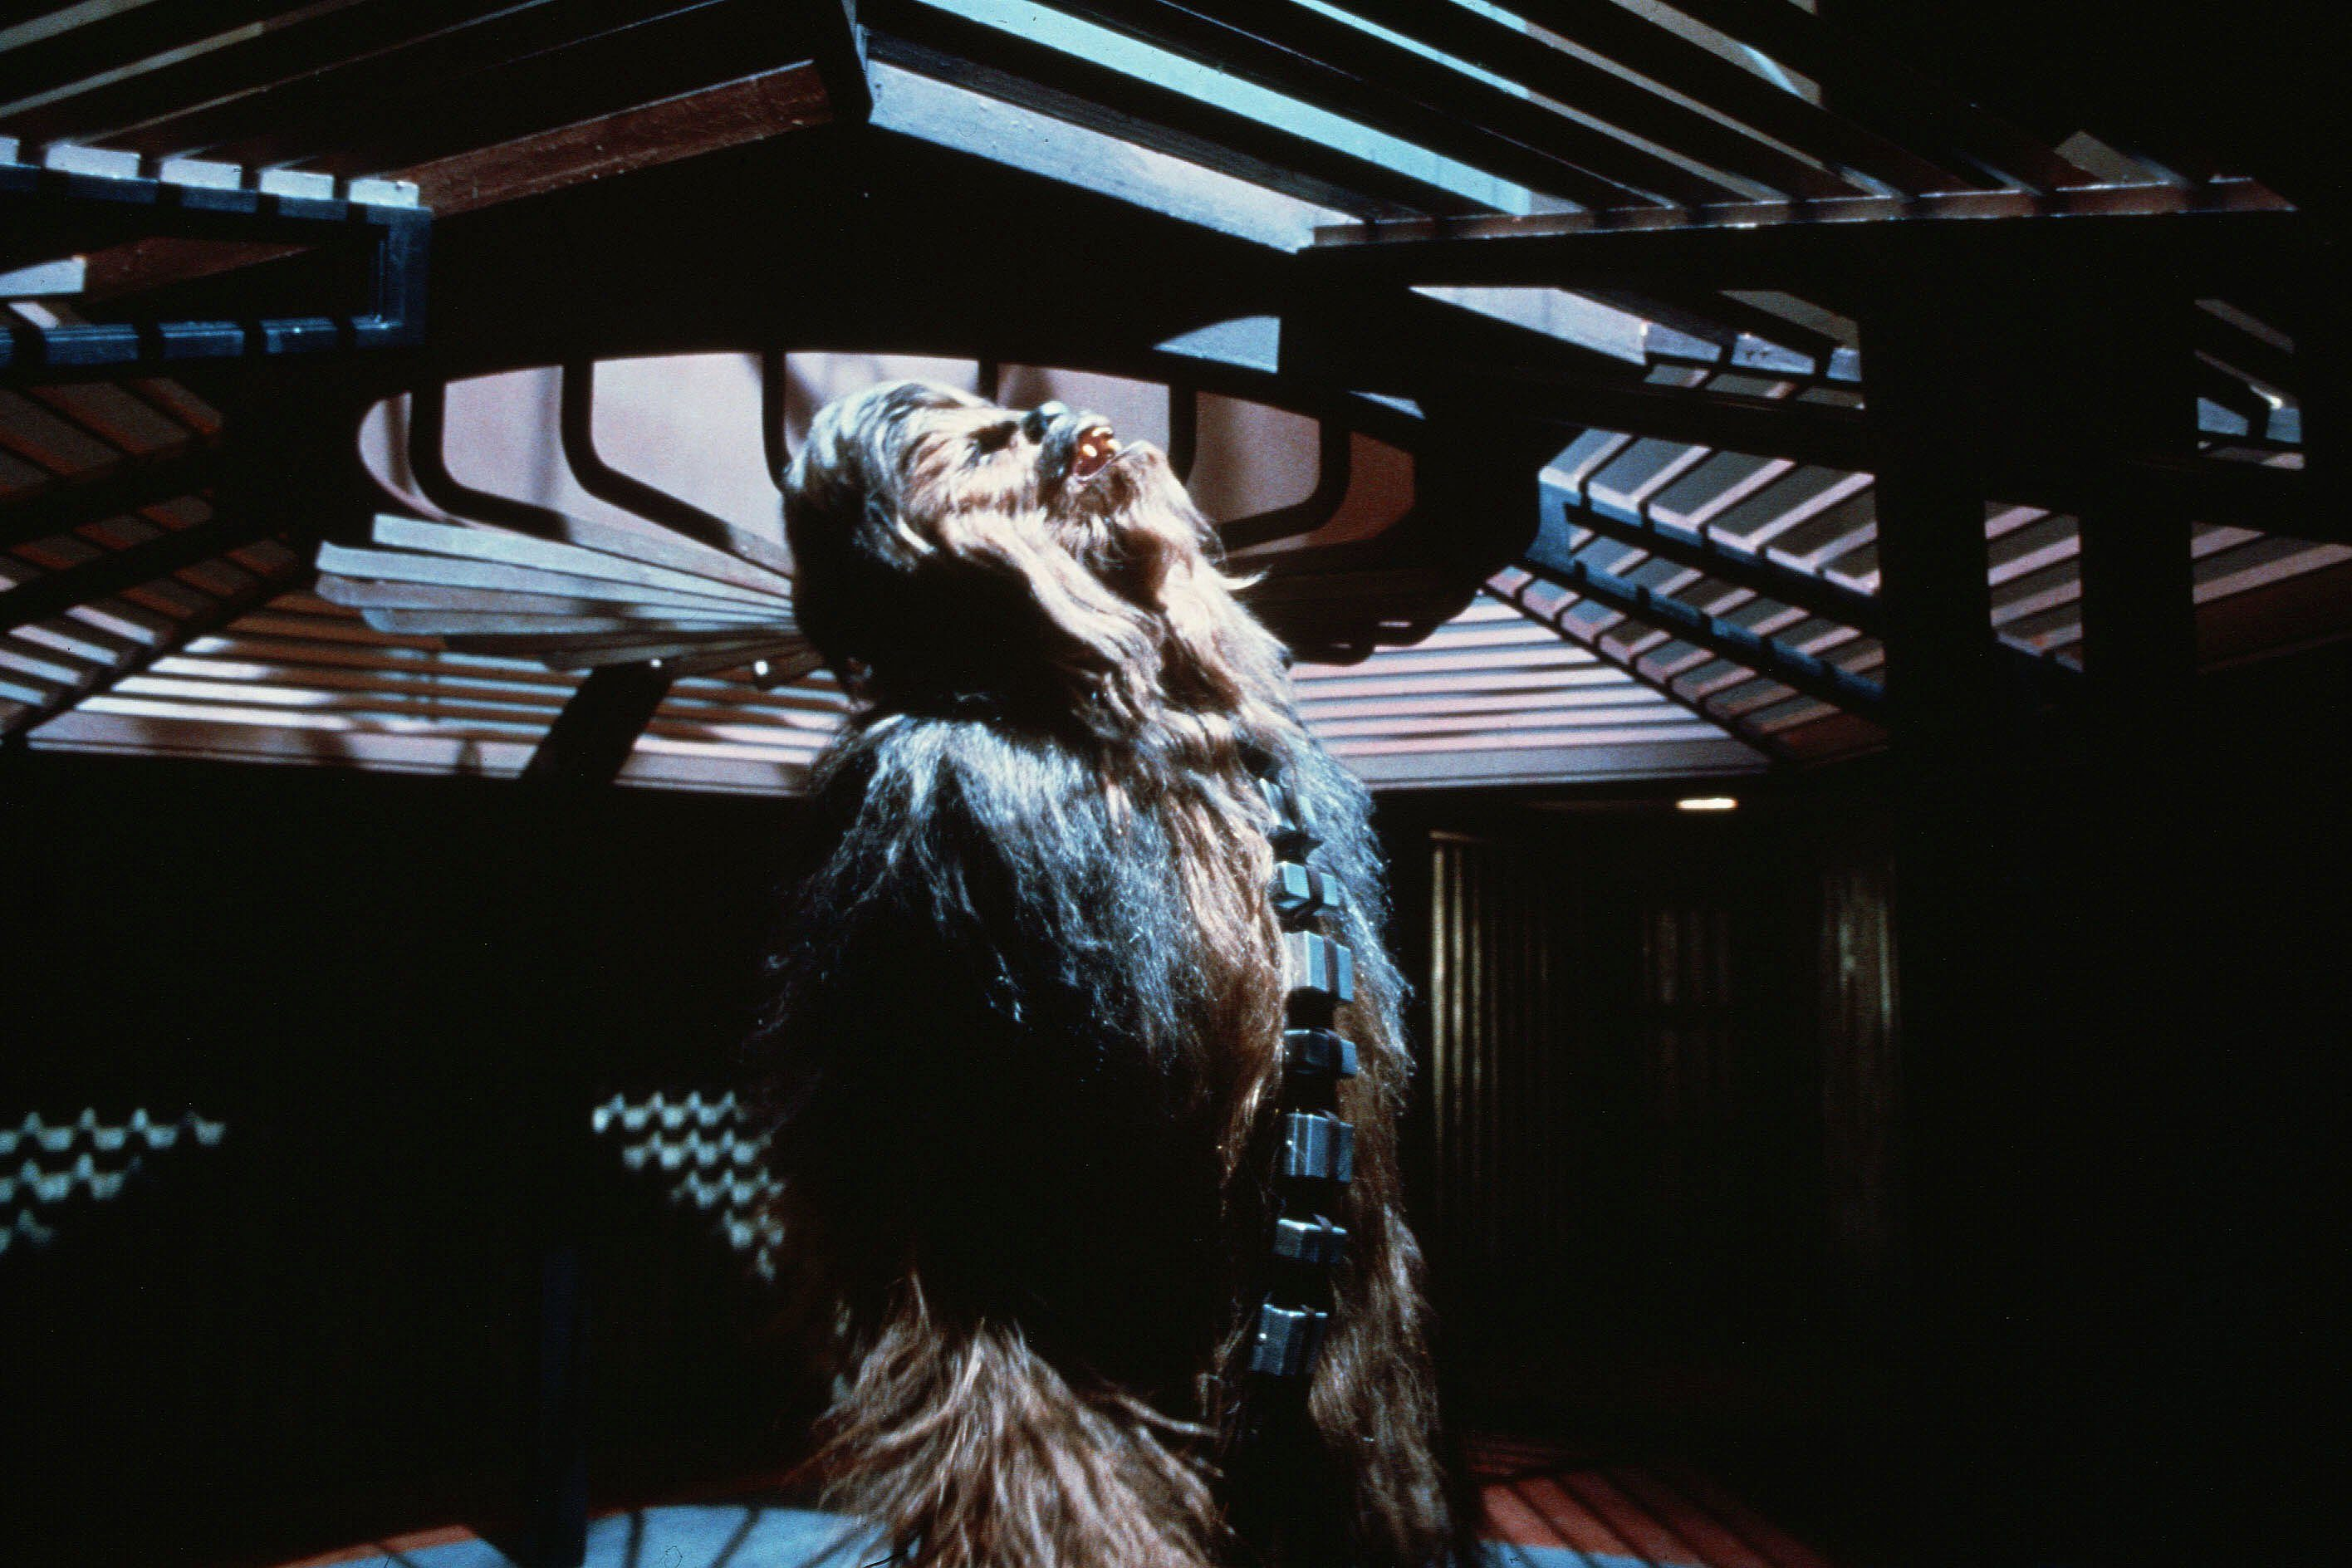 Peter Mayhew - Star Wars Episode V - The Empire Strikes Back - 1980